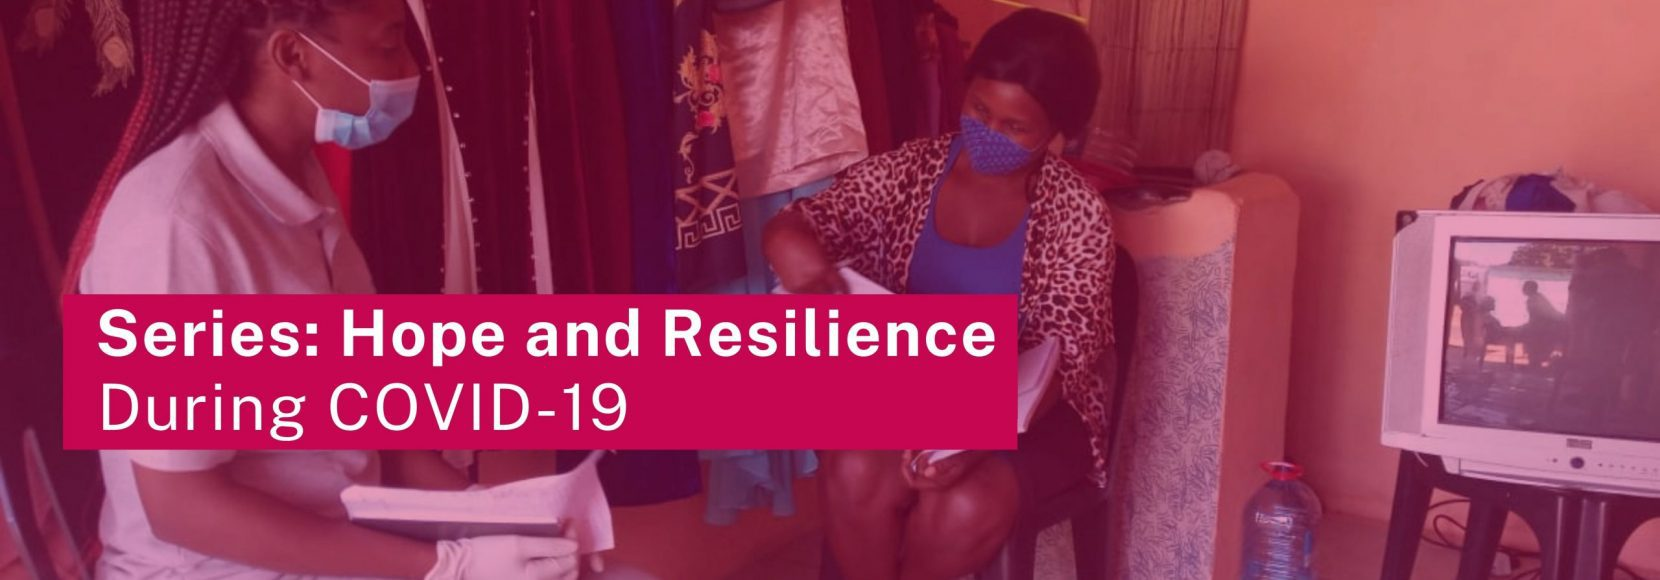 hope and resilience during covid-19 part 3